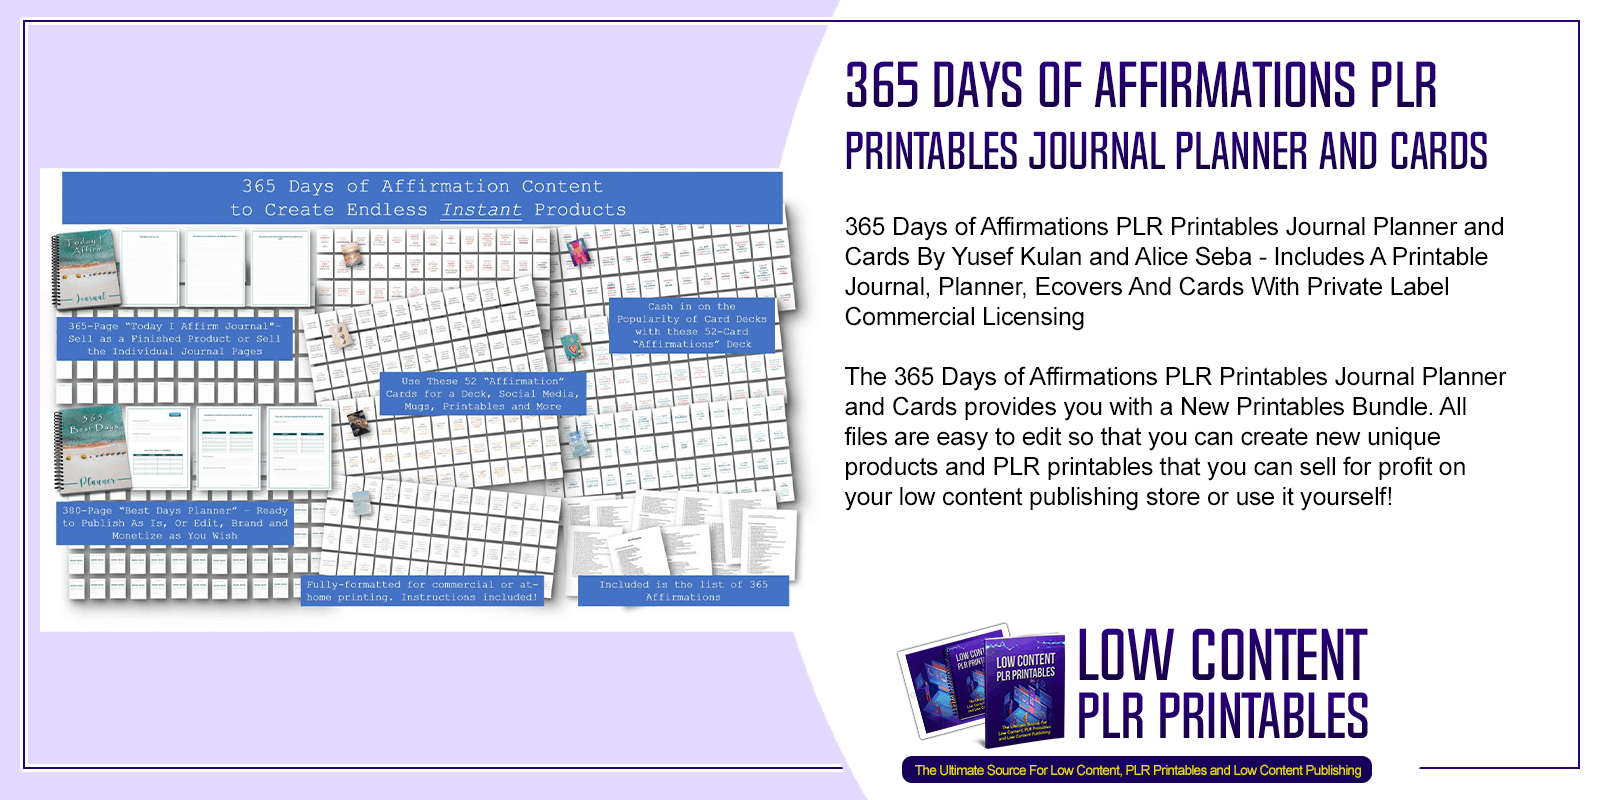 365 Days of Affirmations PLR Printables Journal Planner and Cards